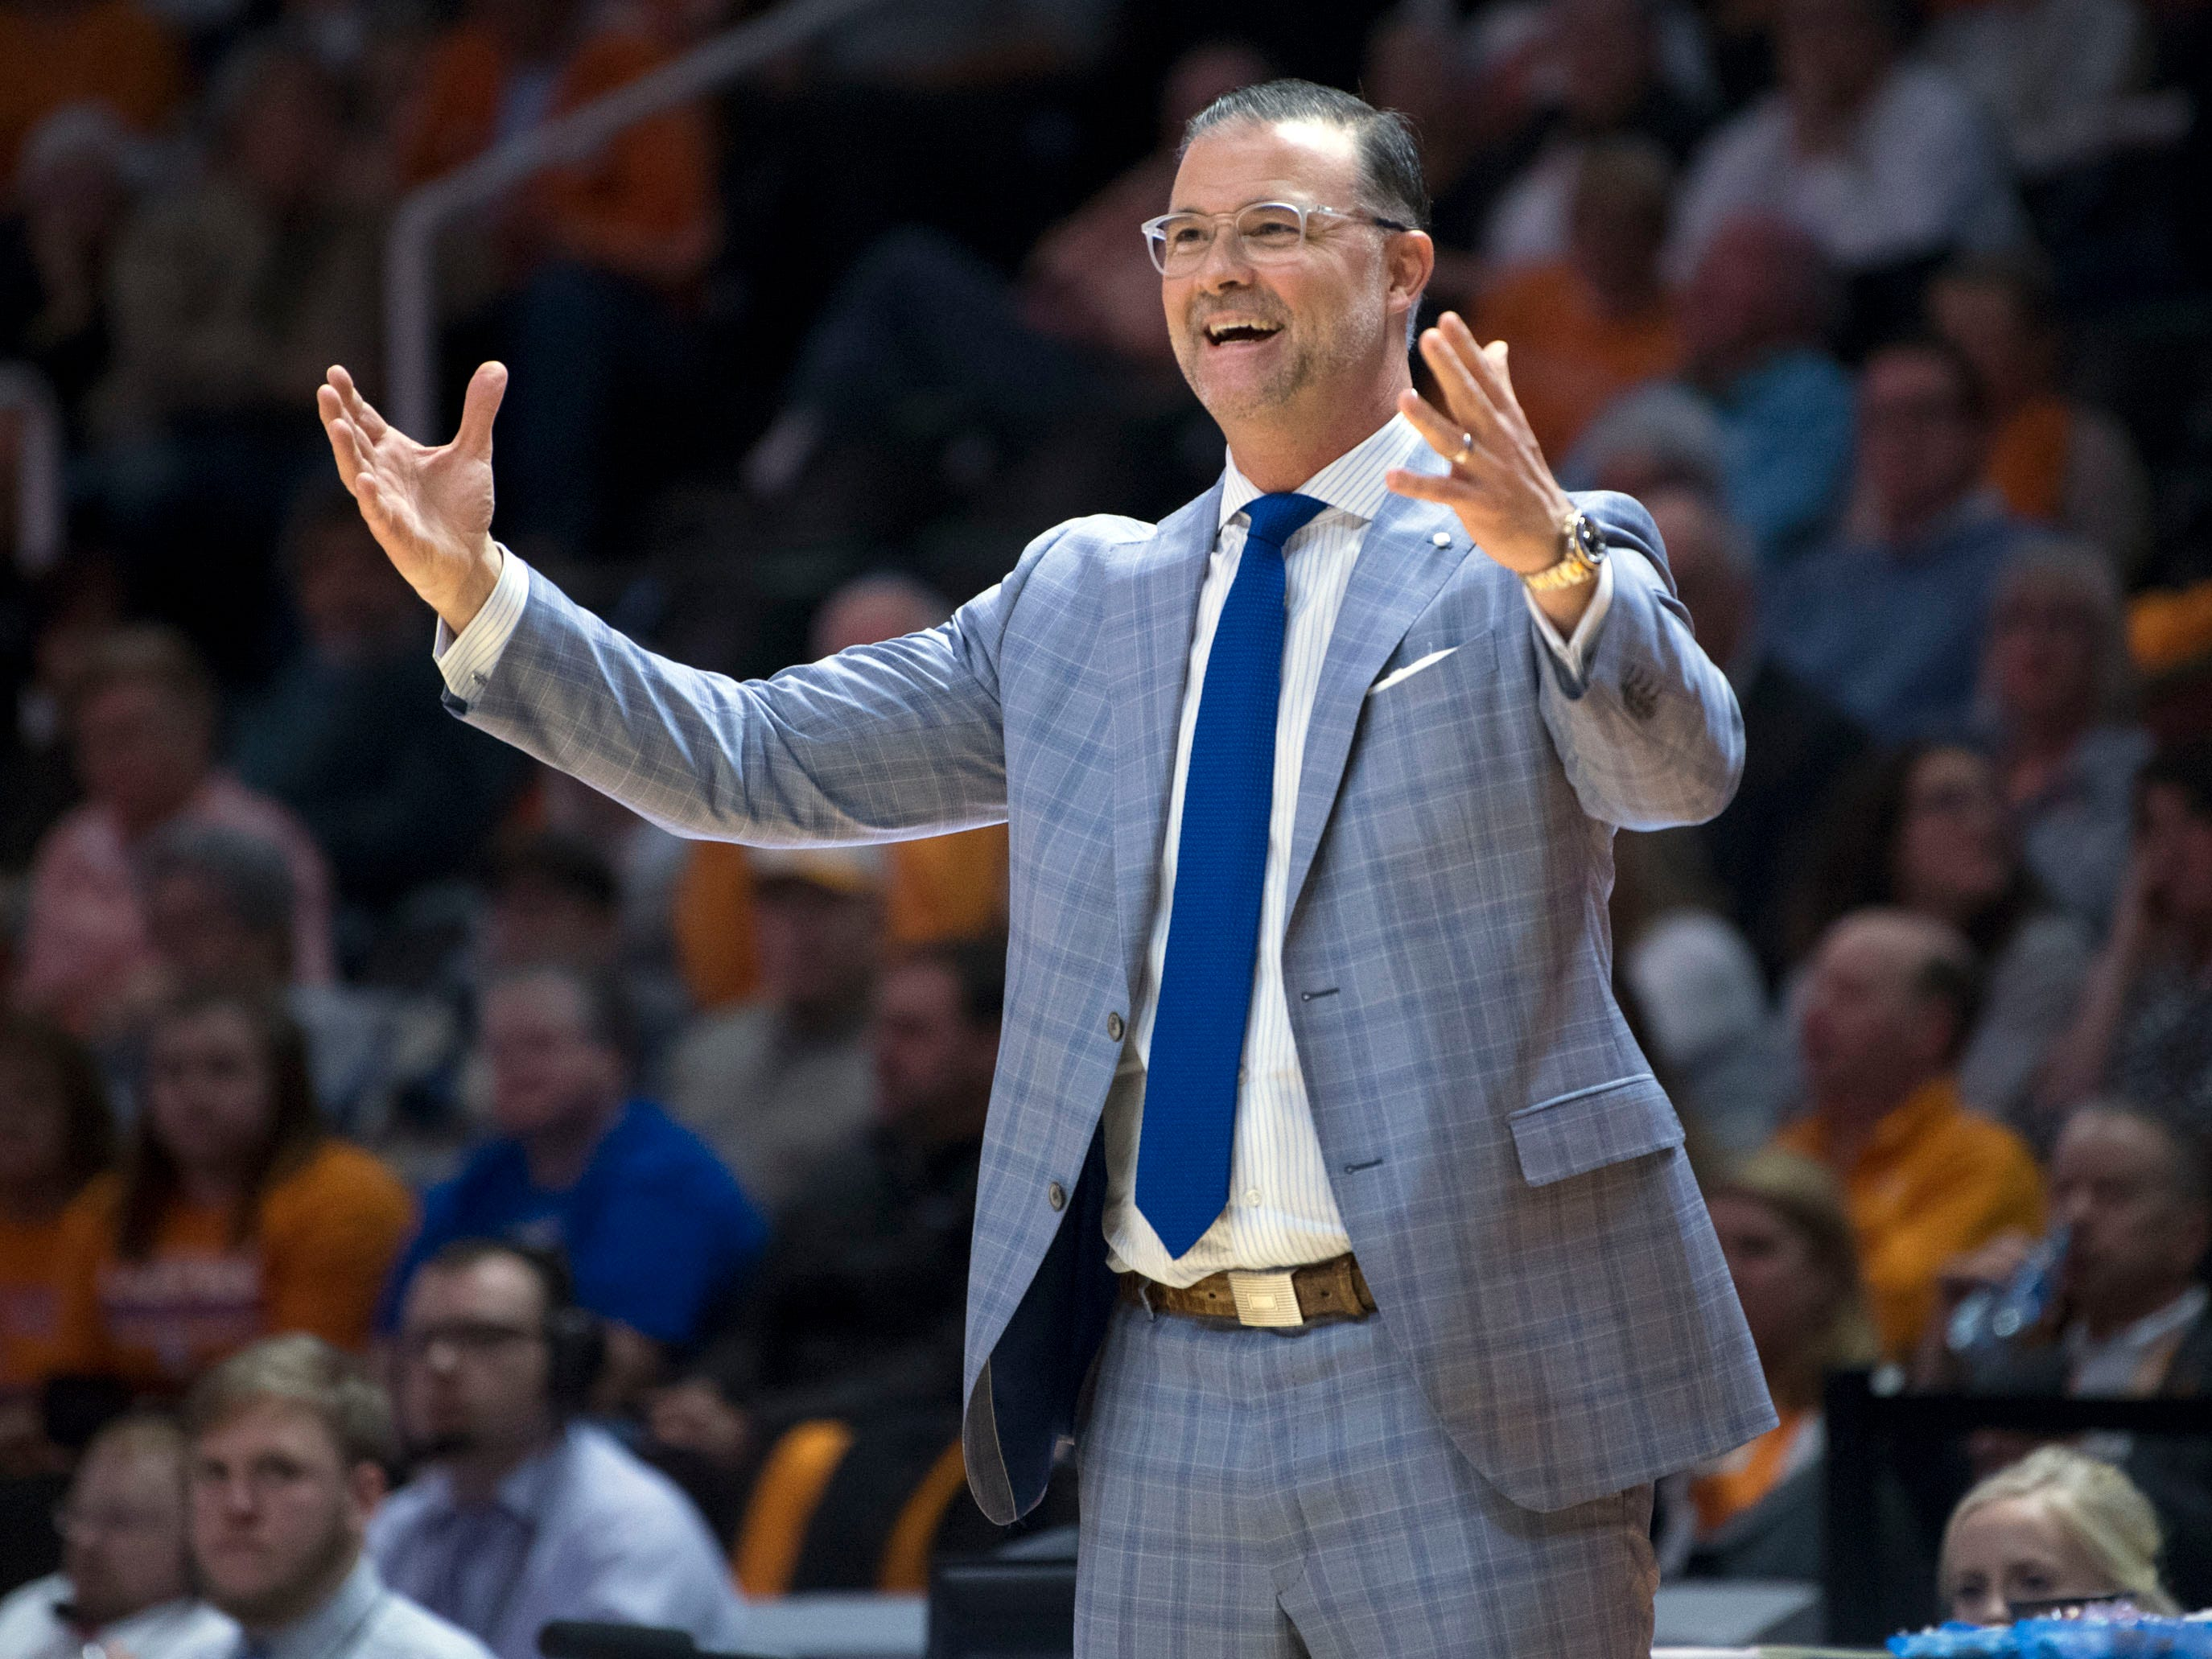 Kentucky women's basketball coach Matthew Mitchell responds to an official's call against his team during the game against Tennessee on Thursday, January 10, 2019.